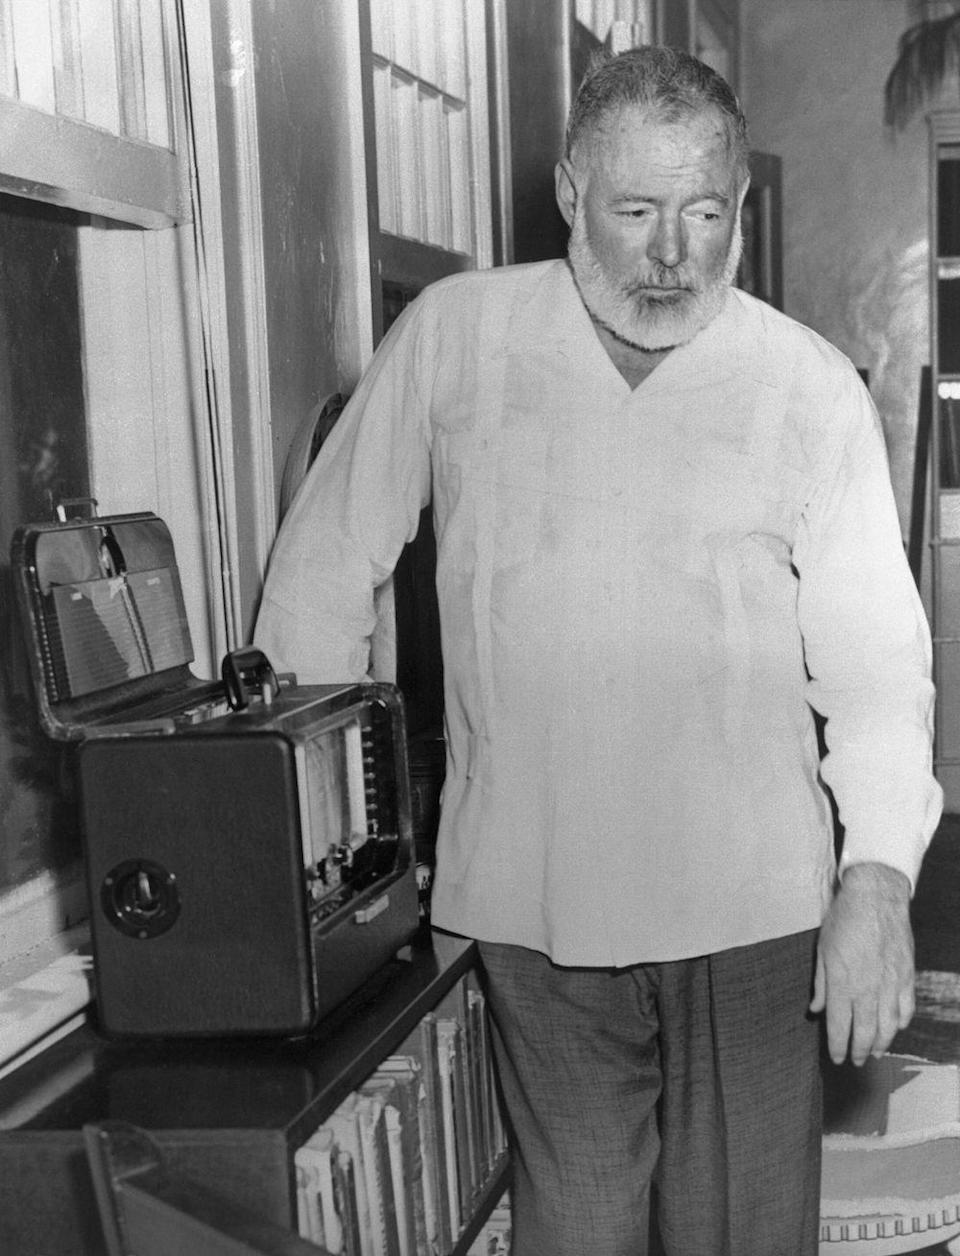 "<p>After nominations in 1947 and 1950, <a href=""https://www.nobelprize.org/nobel_prizes/literature/laureates/1954/award-video.html"" rel=""nofollow noopener"" target=""_blank"" data-ylk=""slk:Hemingway wins"" class=""link rapid-noclick-resp"">Hemingway wins</a> the Nobel Prize for Literature this year. In this photo, taken at his home in Cuba, Hemingway hears the news from the radio.</p>"